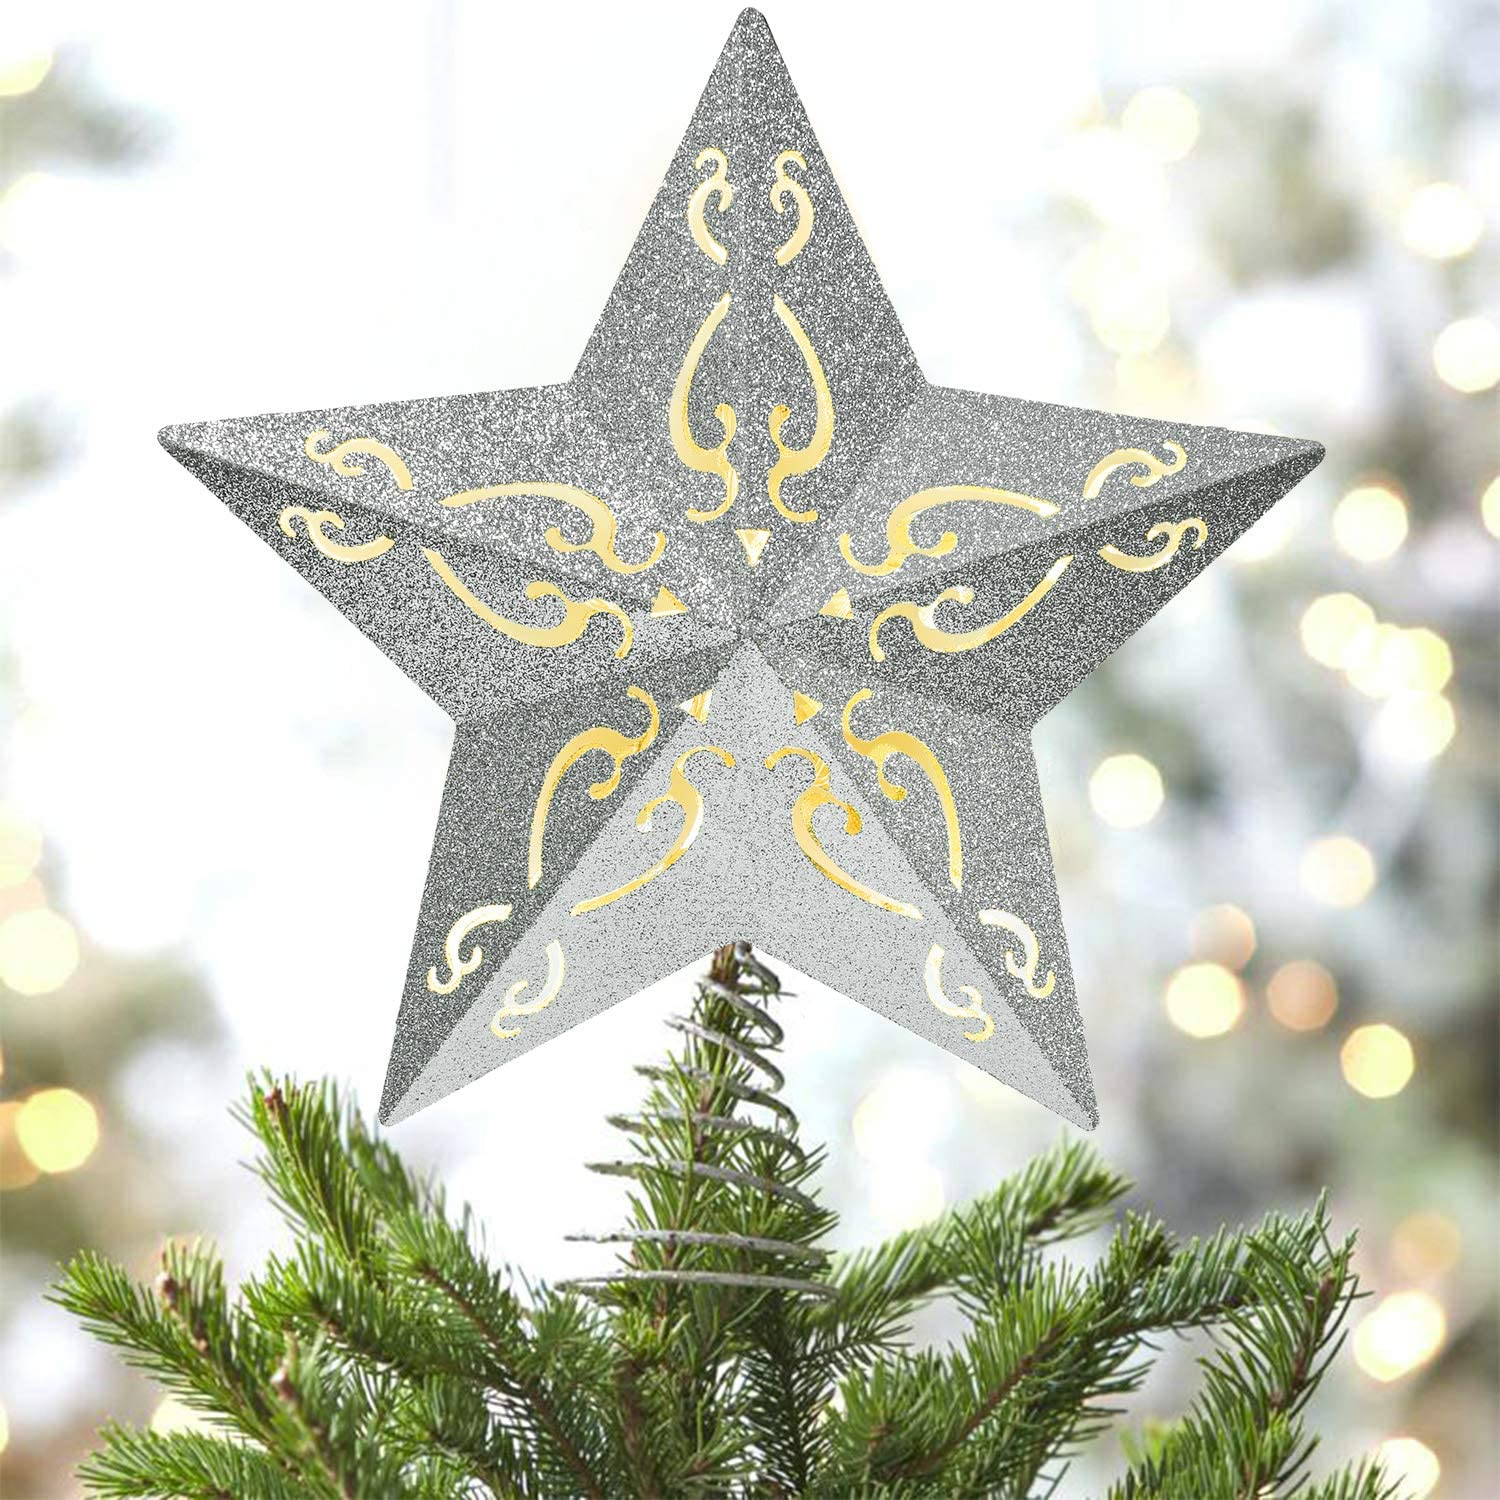 Lvydec Lighted Christmas Tree S Battery Ranking TOP2 Operated Be super welcome Topper